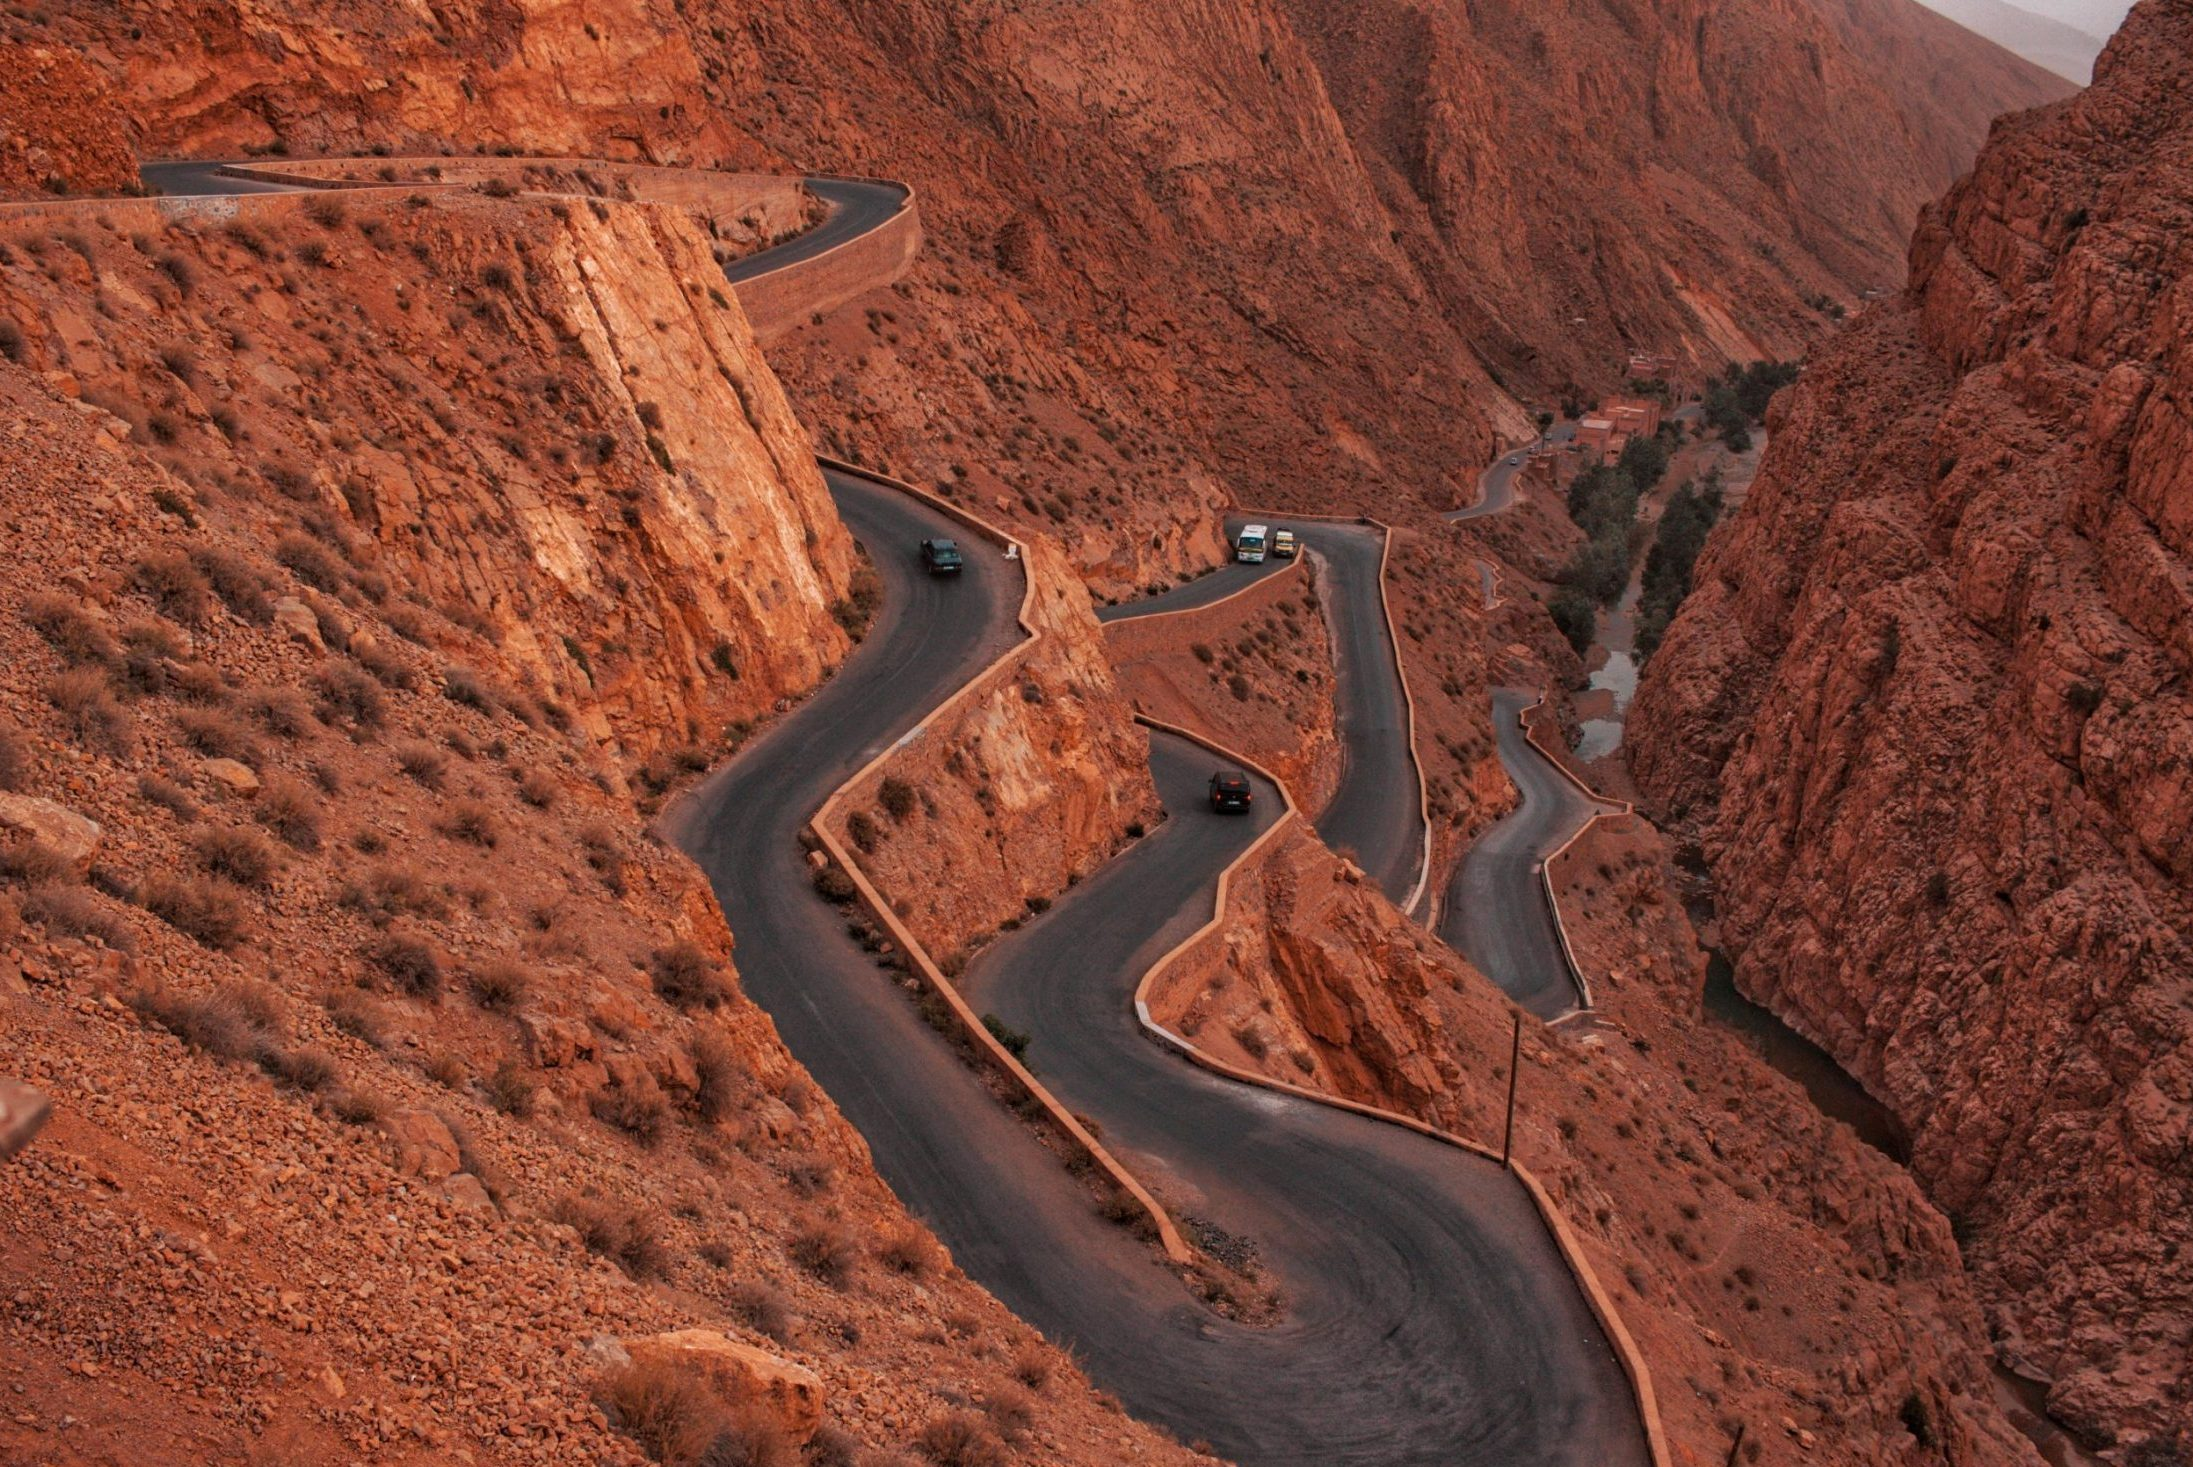 winding road of Dades Gorges in the High Atlas Mountains